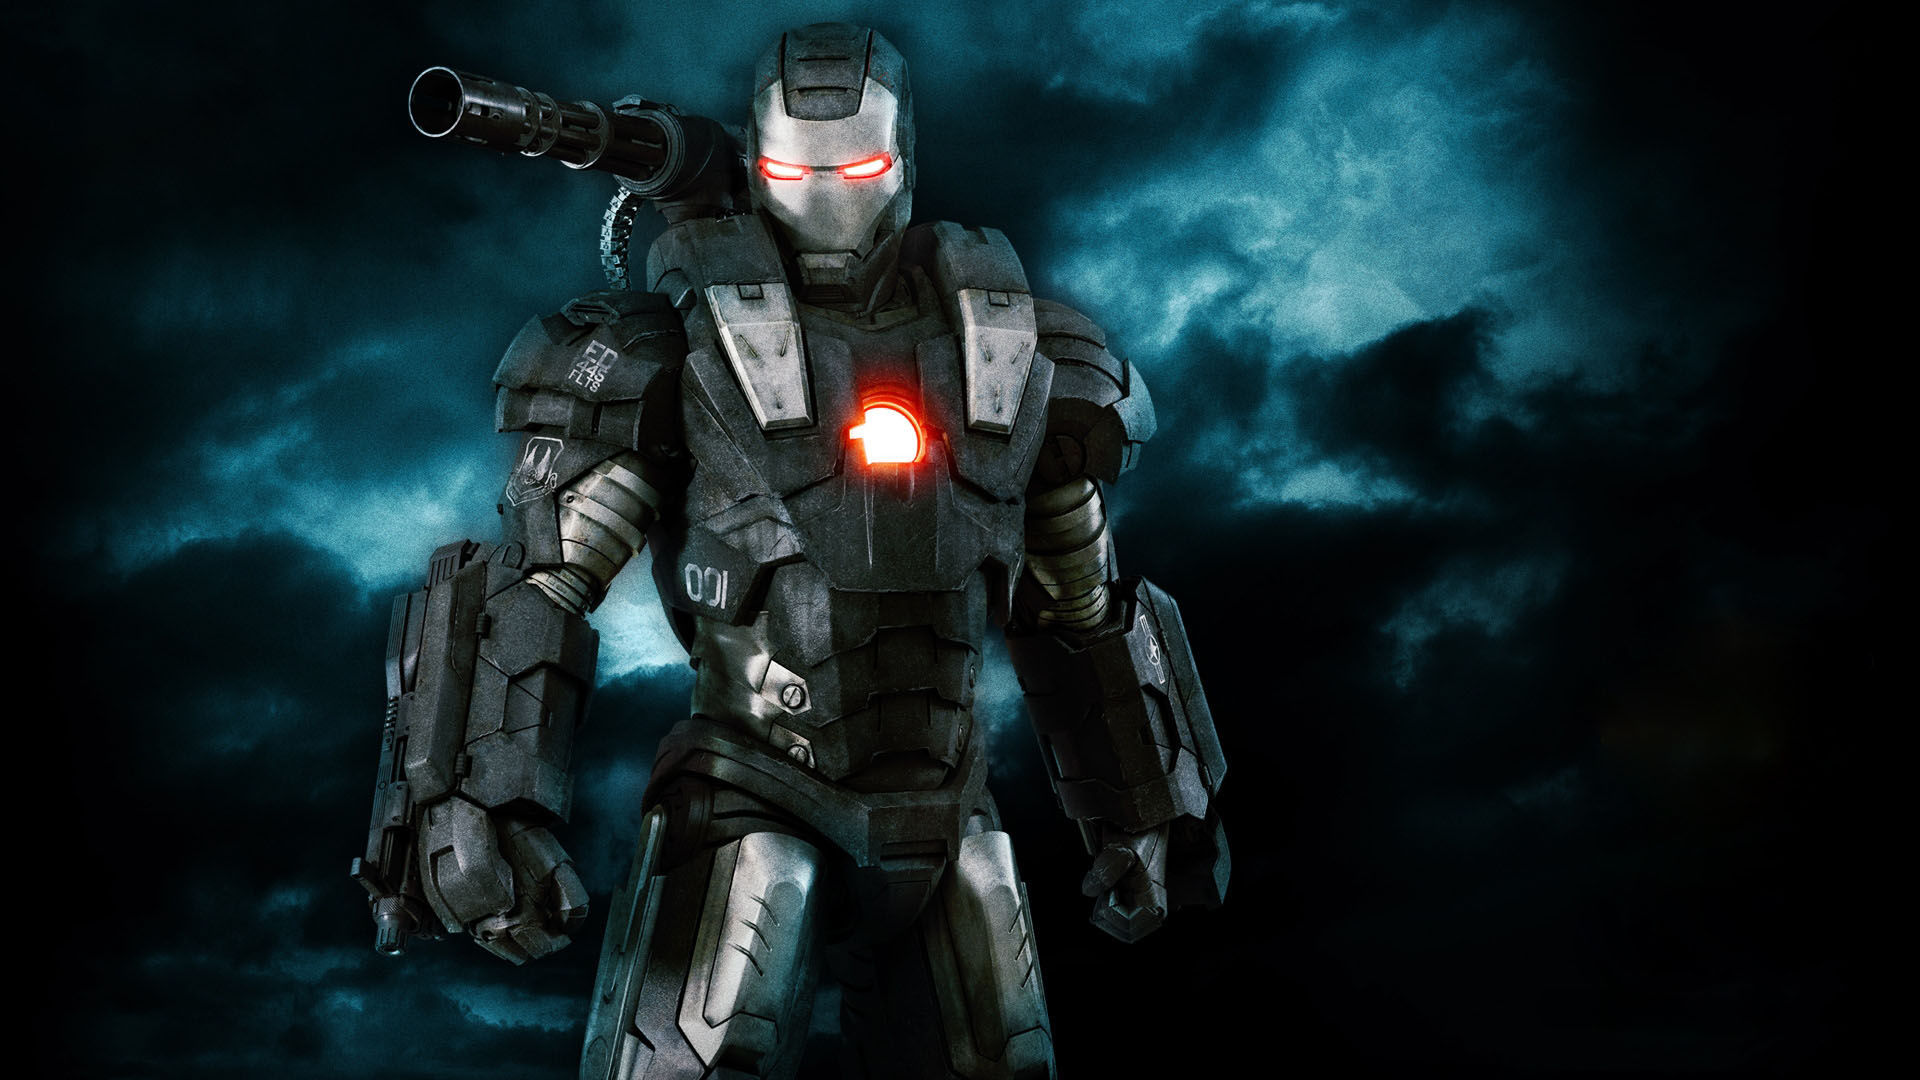 Cool Iron Man Wallpaper Hd Images Pictures   Becuo 1920x1080